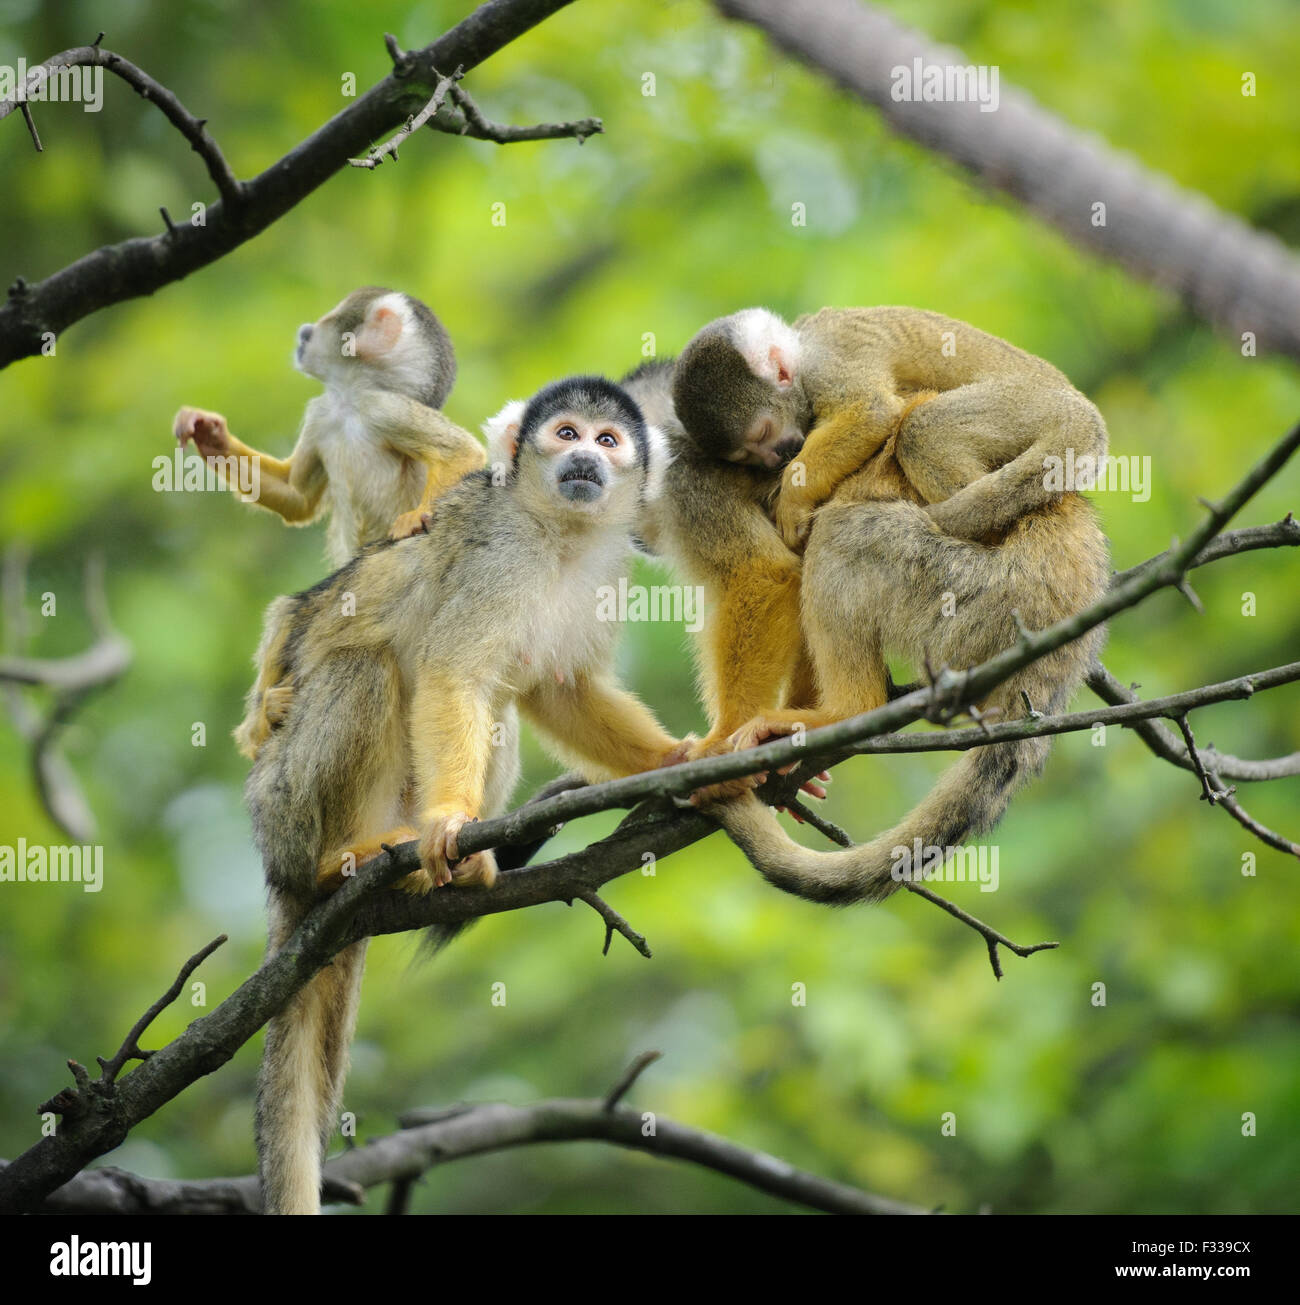 Black-capped squirrel monkeys  sitting on tree branch with their cute little babies - Stock Image